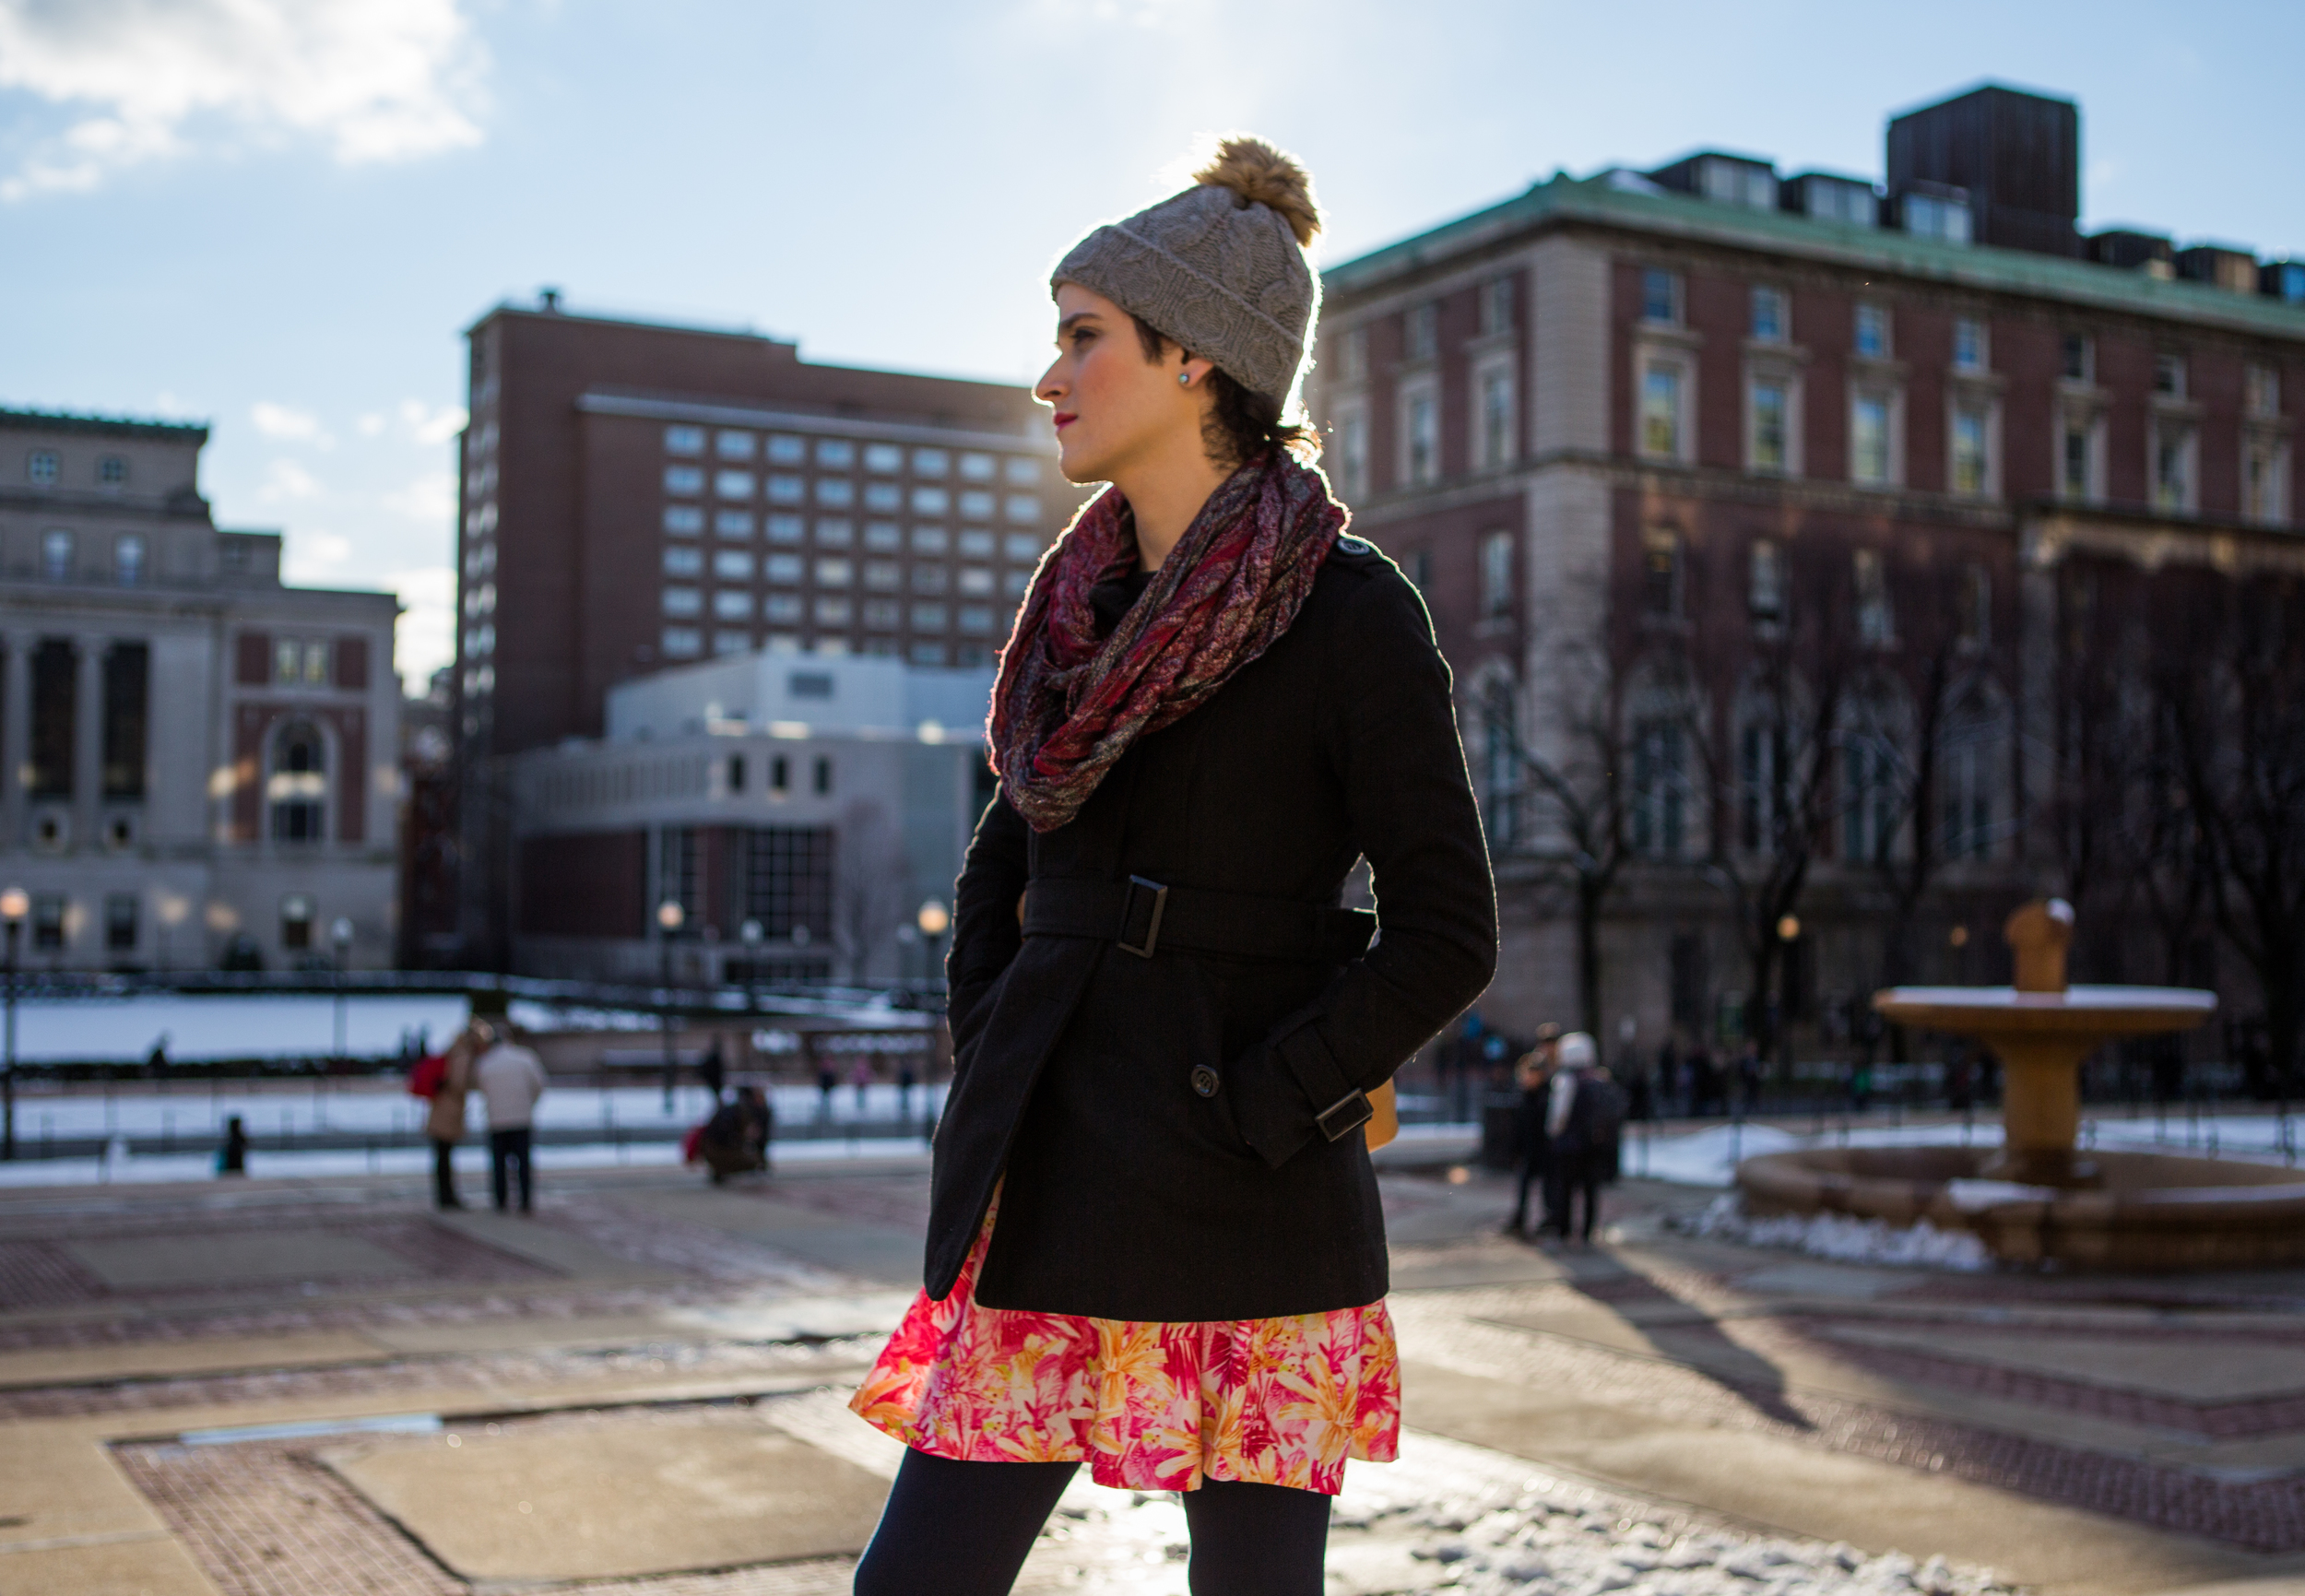 Abby Stein, a transgender Jewish woman who left the Ultra-Orthodox community where she grew up in Williamsburg, Brooklyn to attend Columbia University and begin hormone therapy, for  Women in the World .